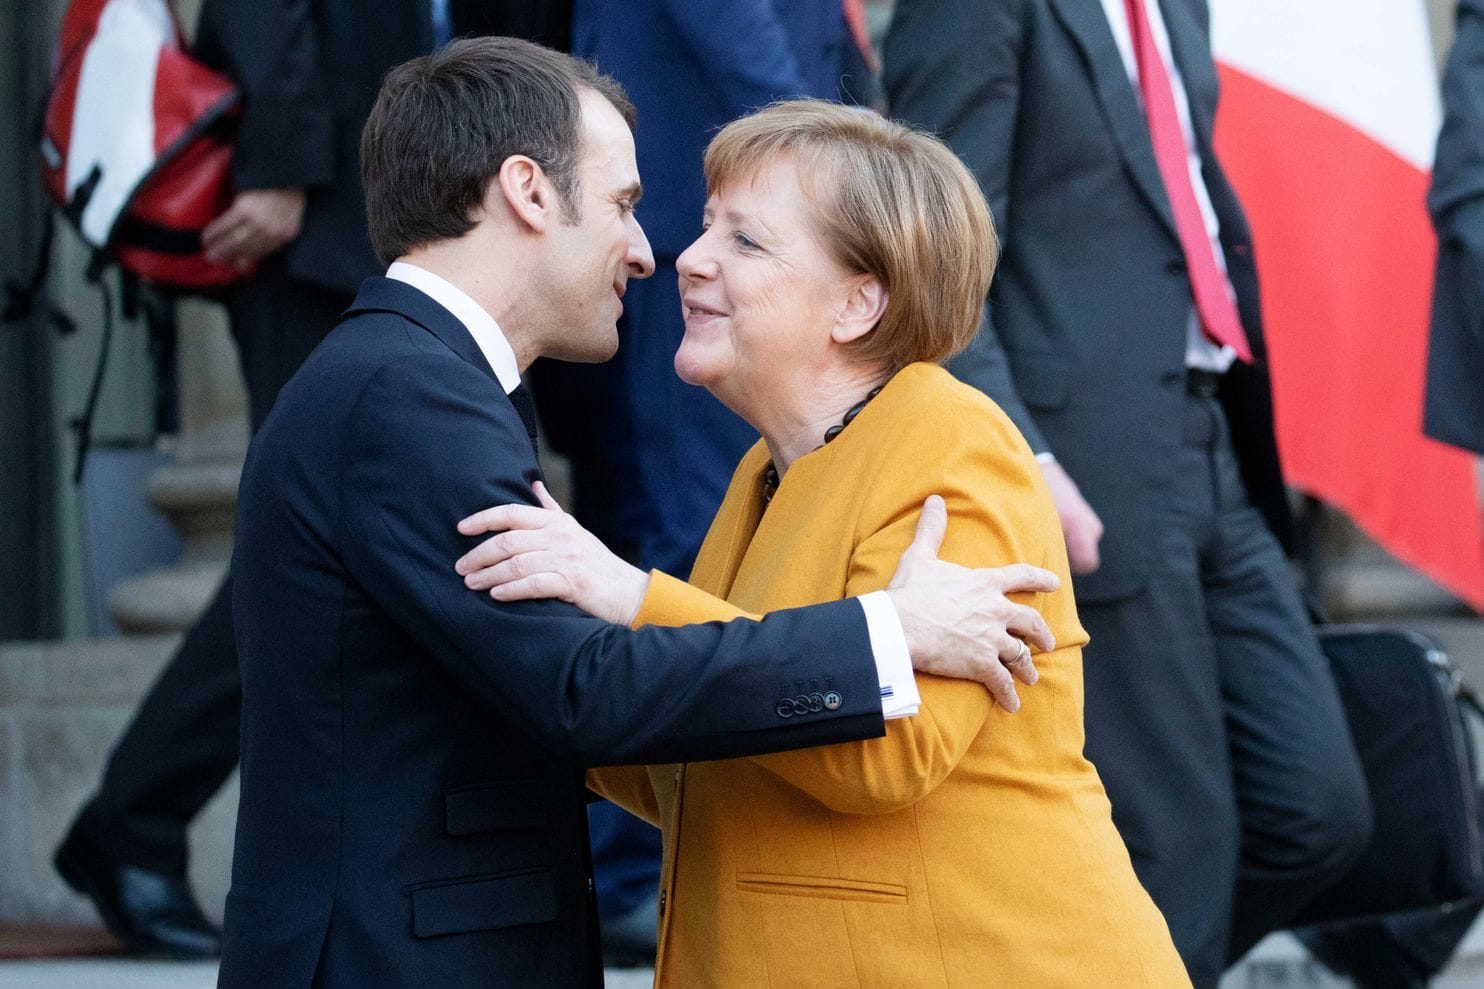 France is prepared to extend its nuclear deterrent to Germany